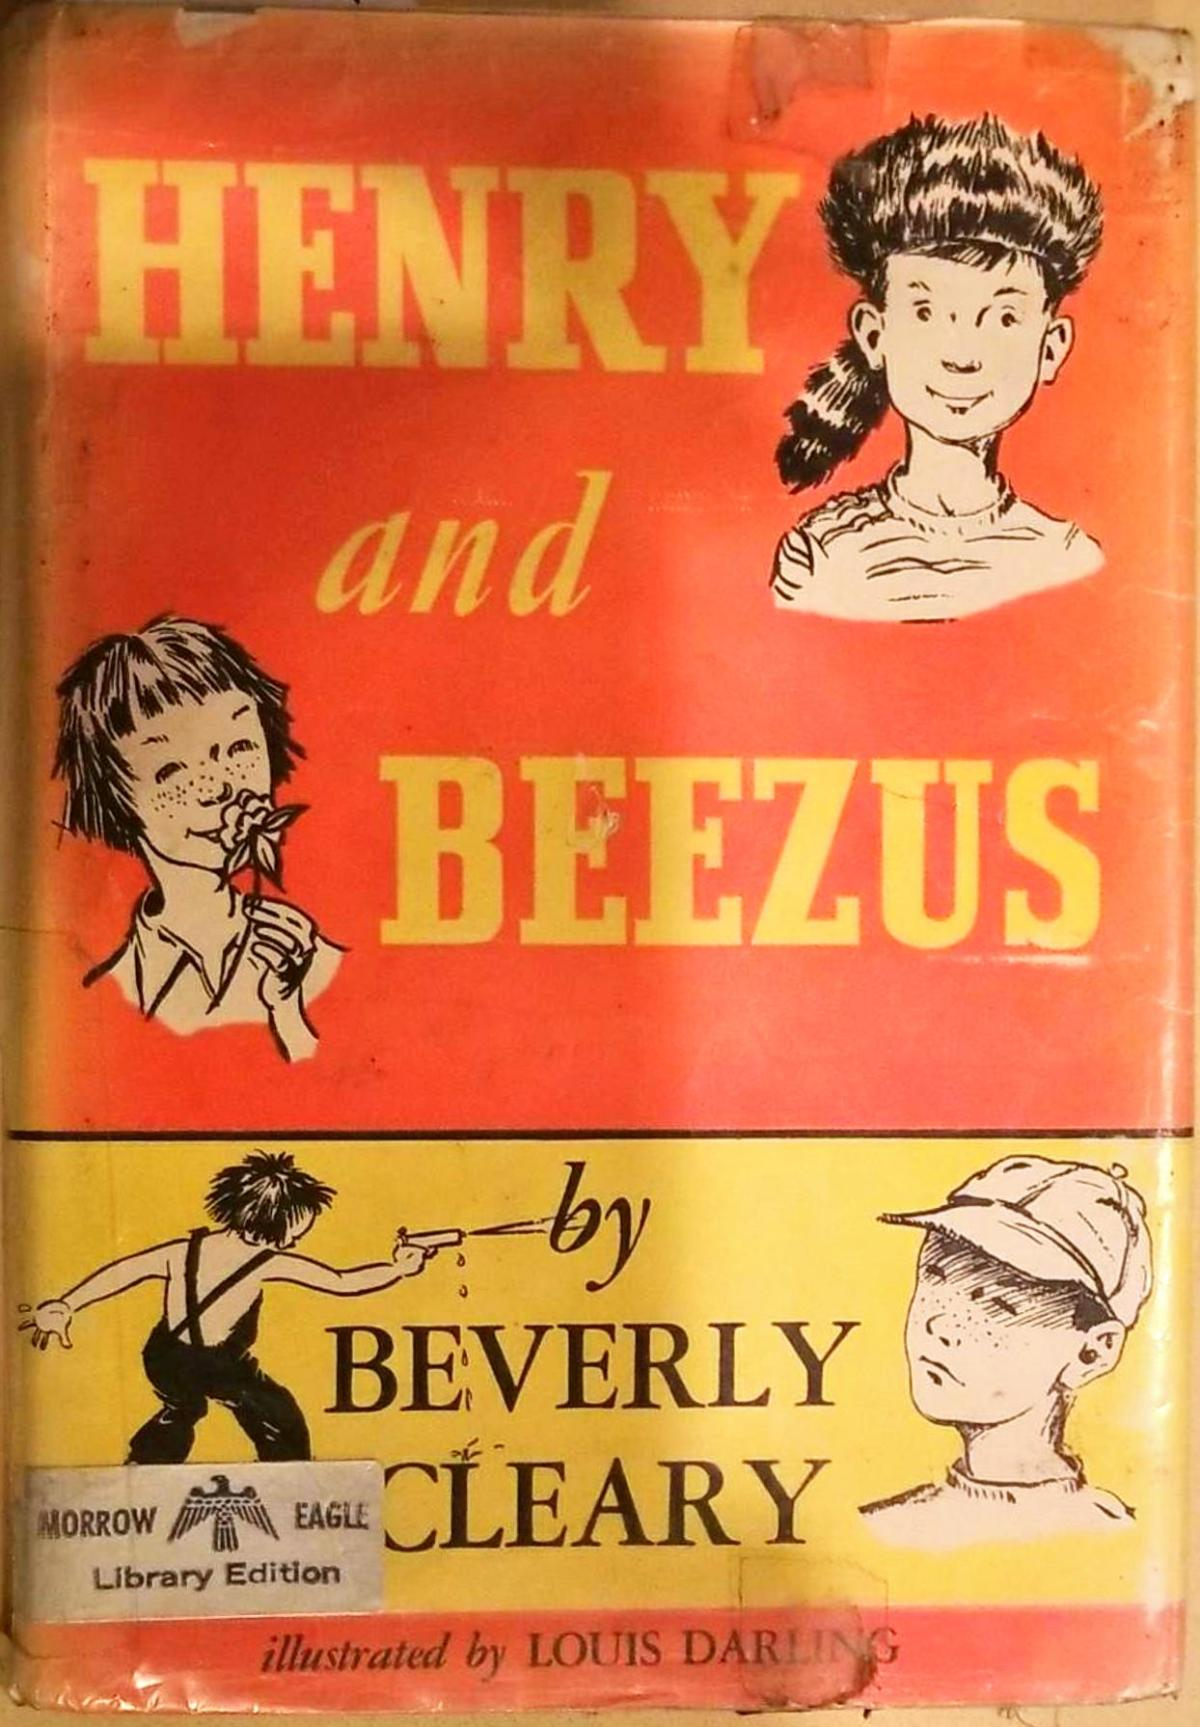 📖 Read pages 1-38 of Henry and Beezus by Beverly Cleary